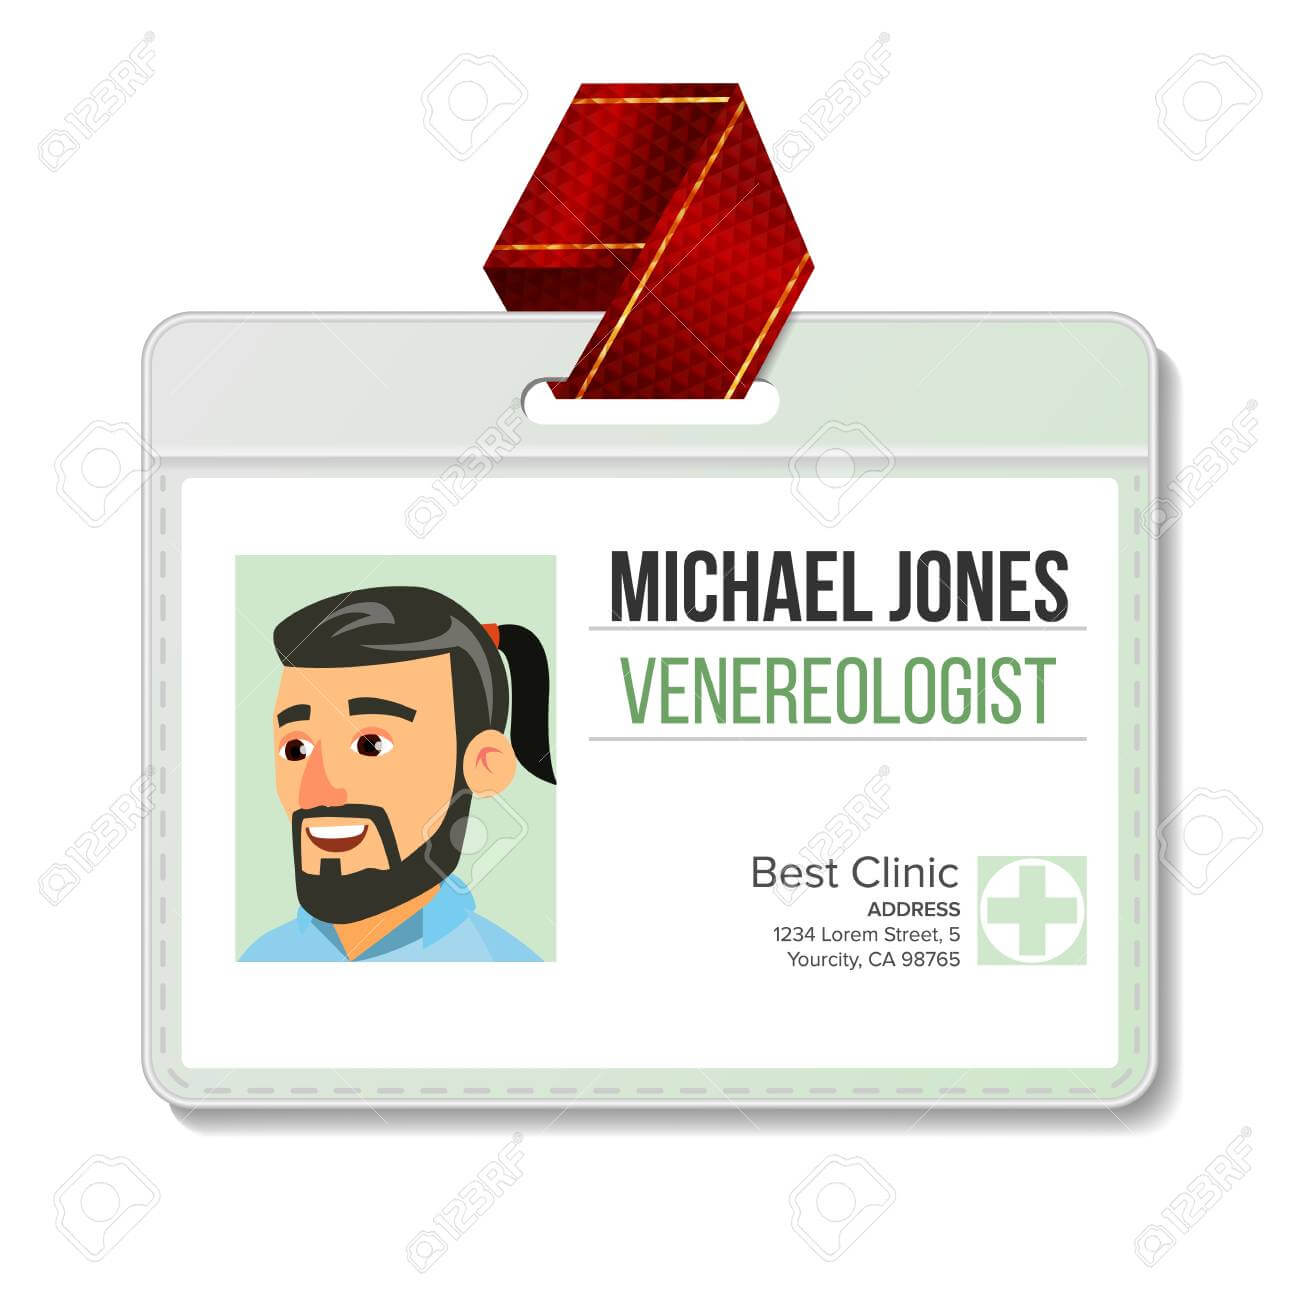 Venereologist Identification Badge Vector. Man. Id Card Template within Hospital Id Card Template